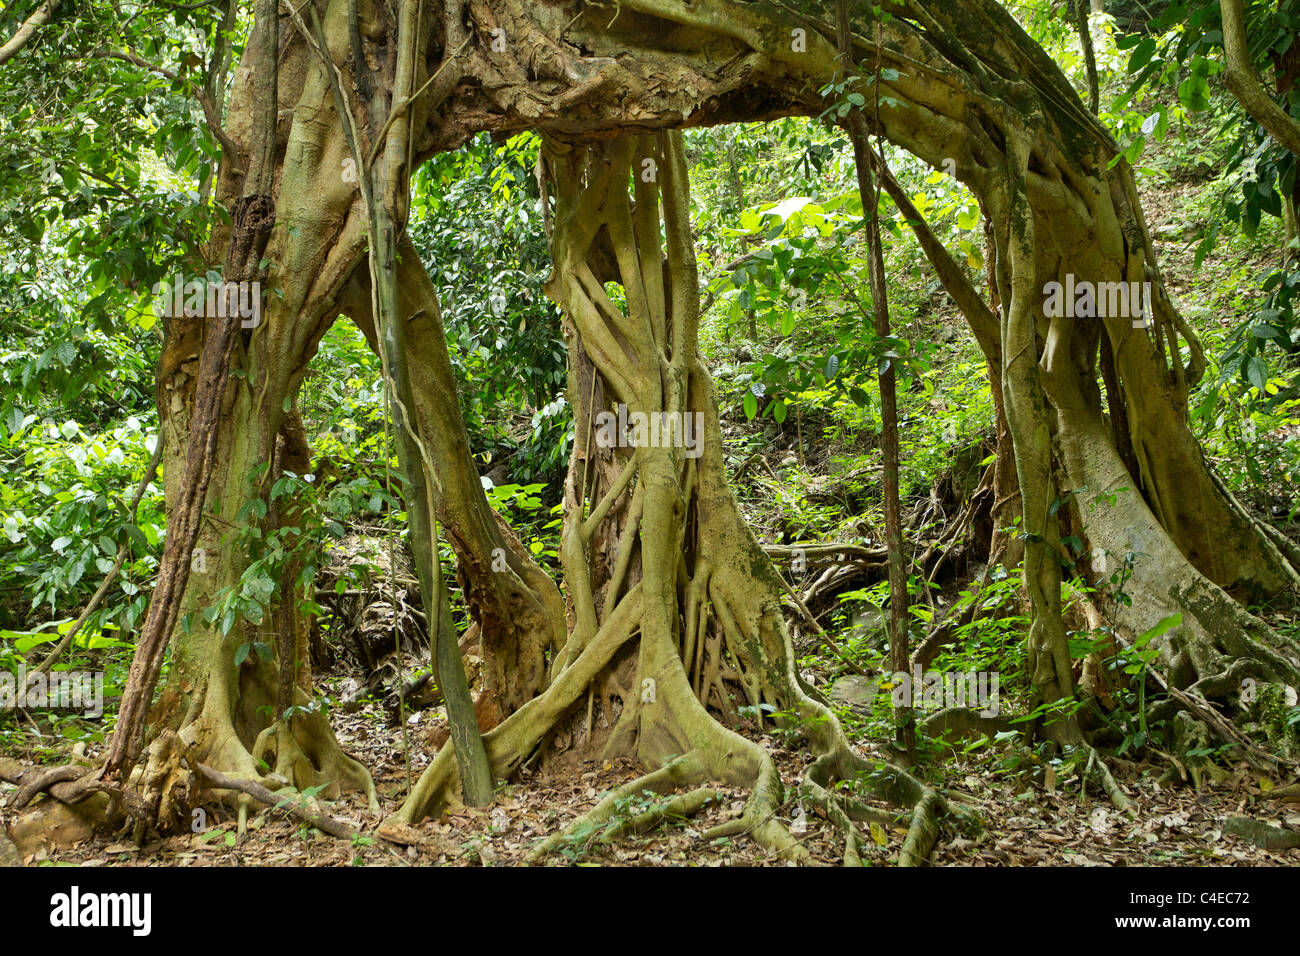 large fig tree roots in tropical rainforest, kaeng krachan national park, thailand - Stock Image